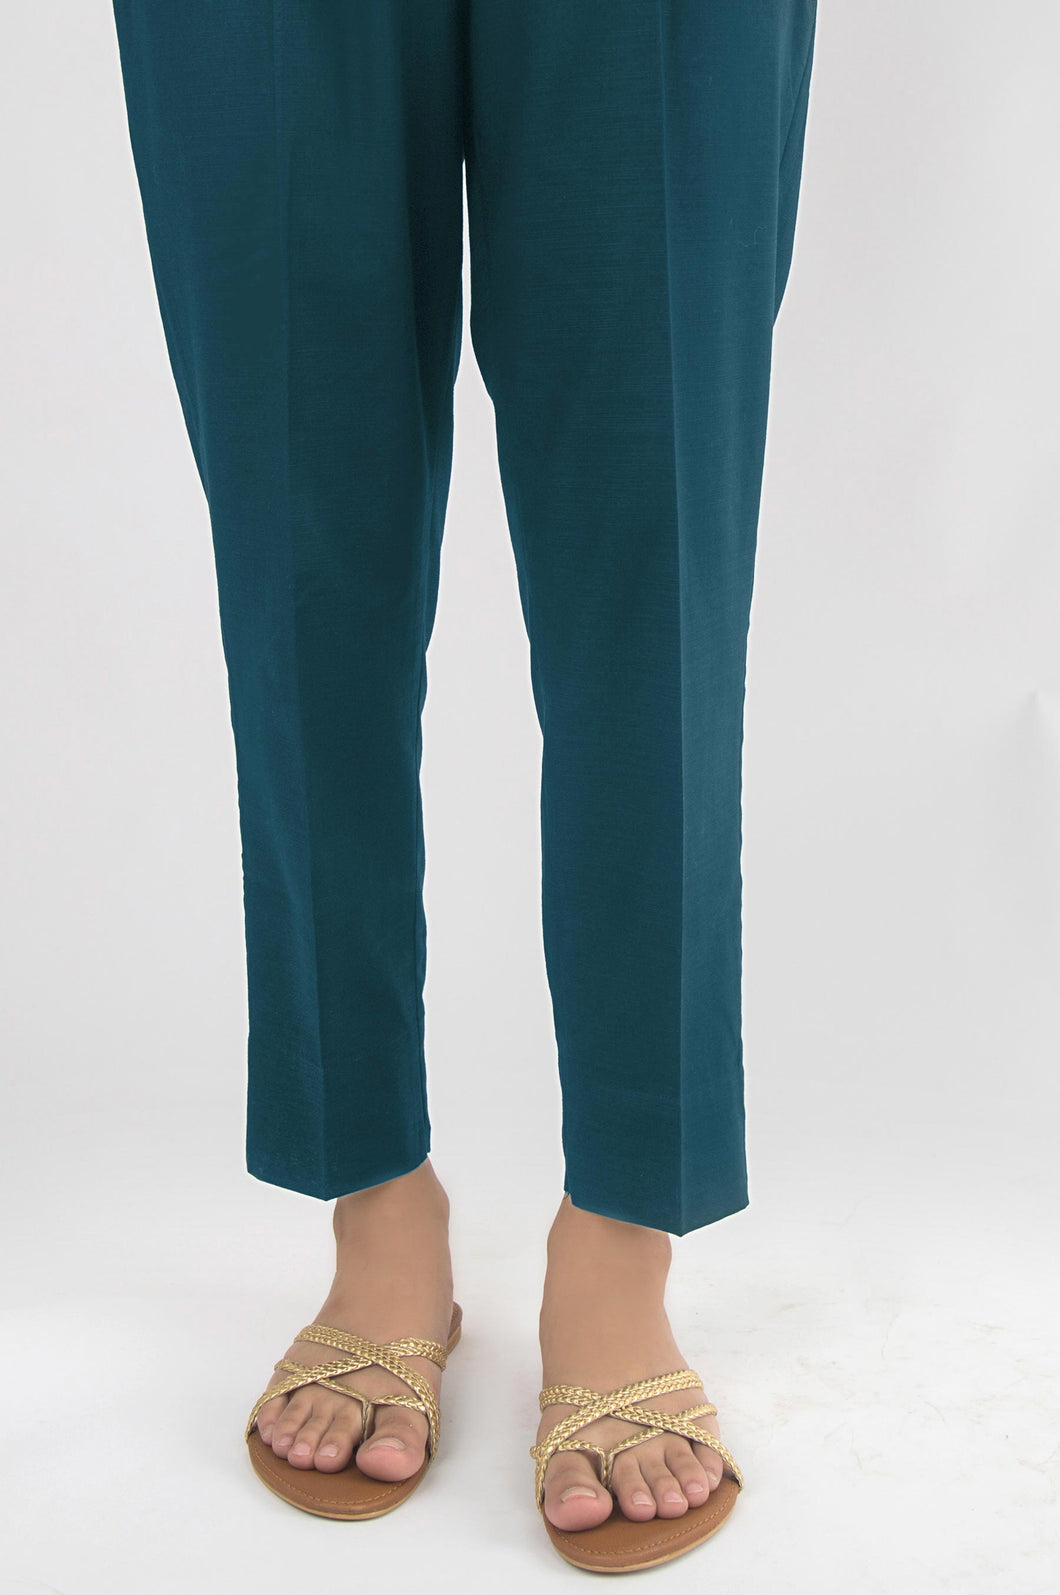 Unstitched Cambric Bottom - Teal